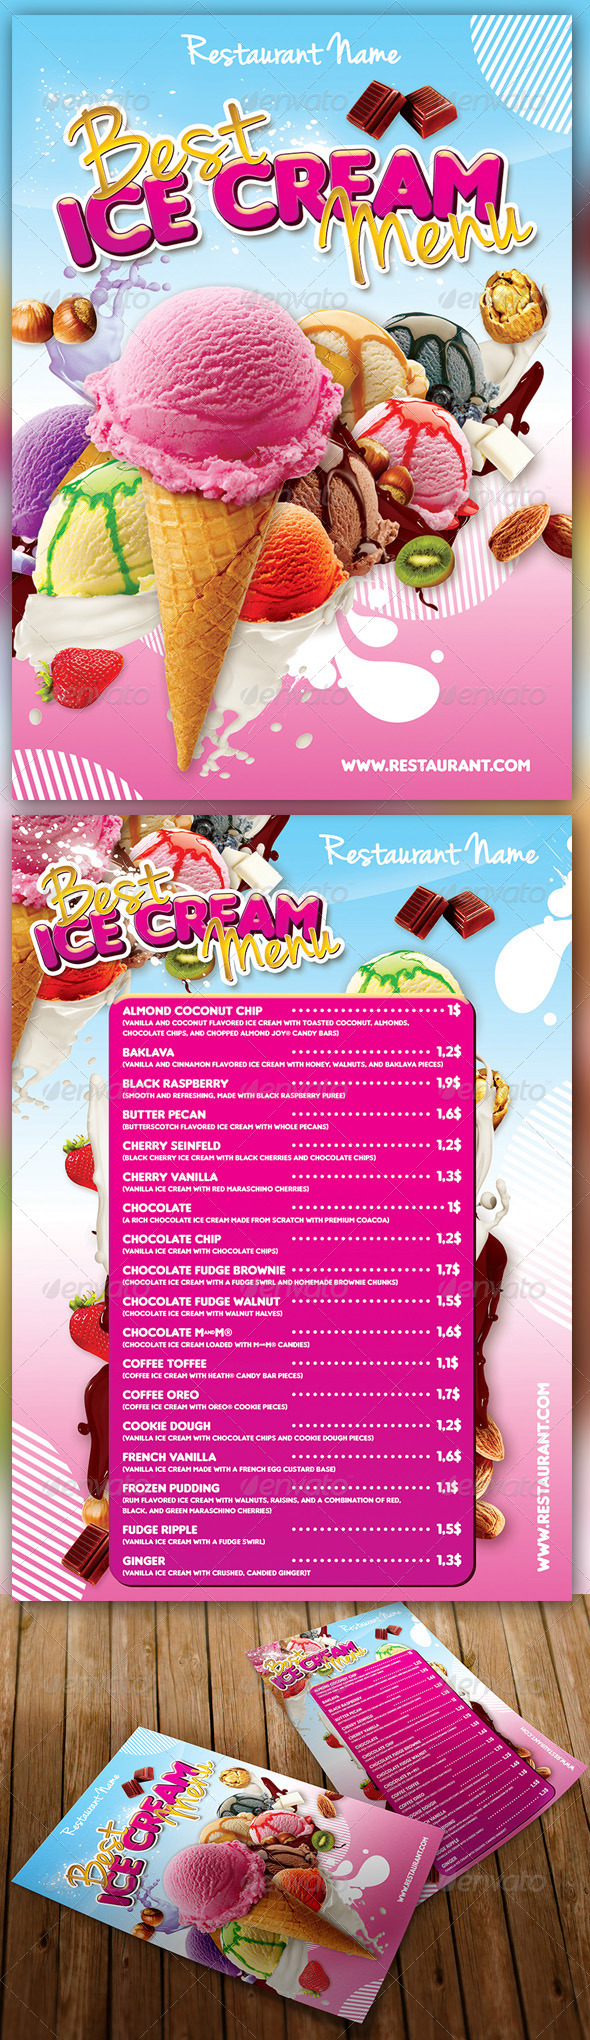 Ice Cream Menu - Food Menus Print Templates